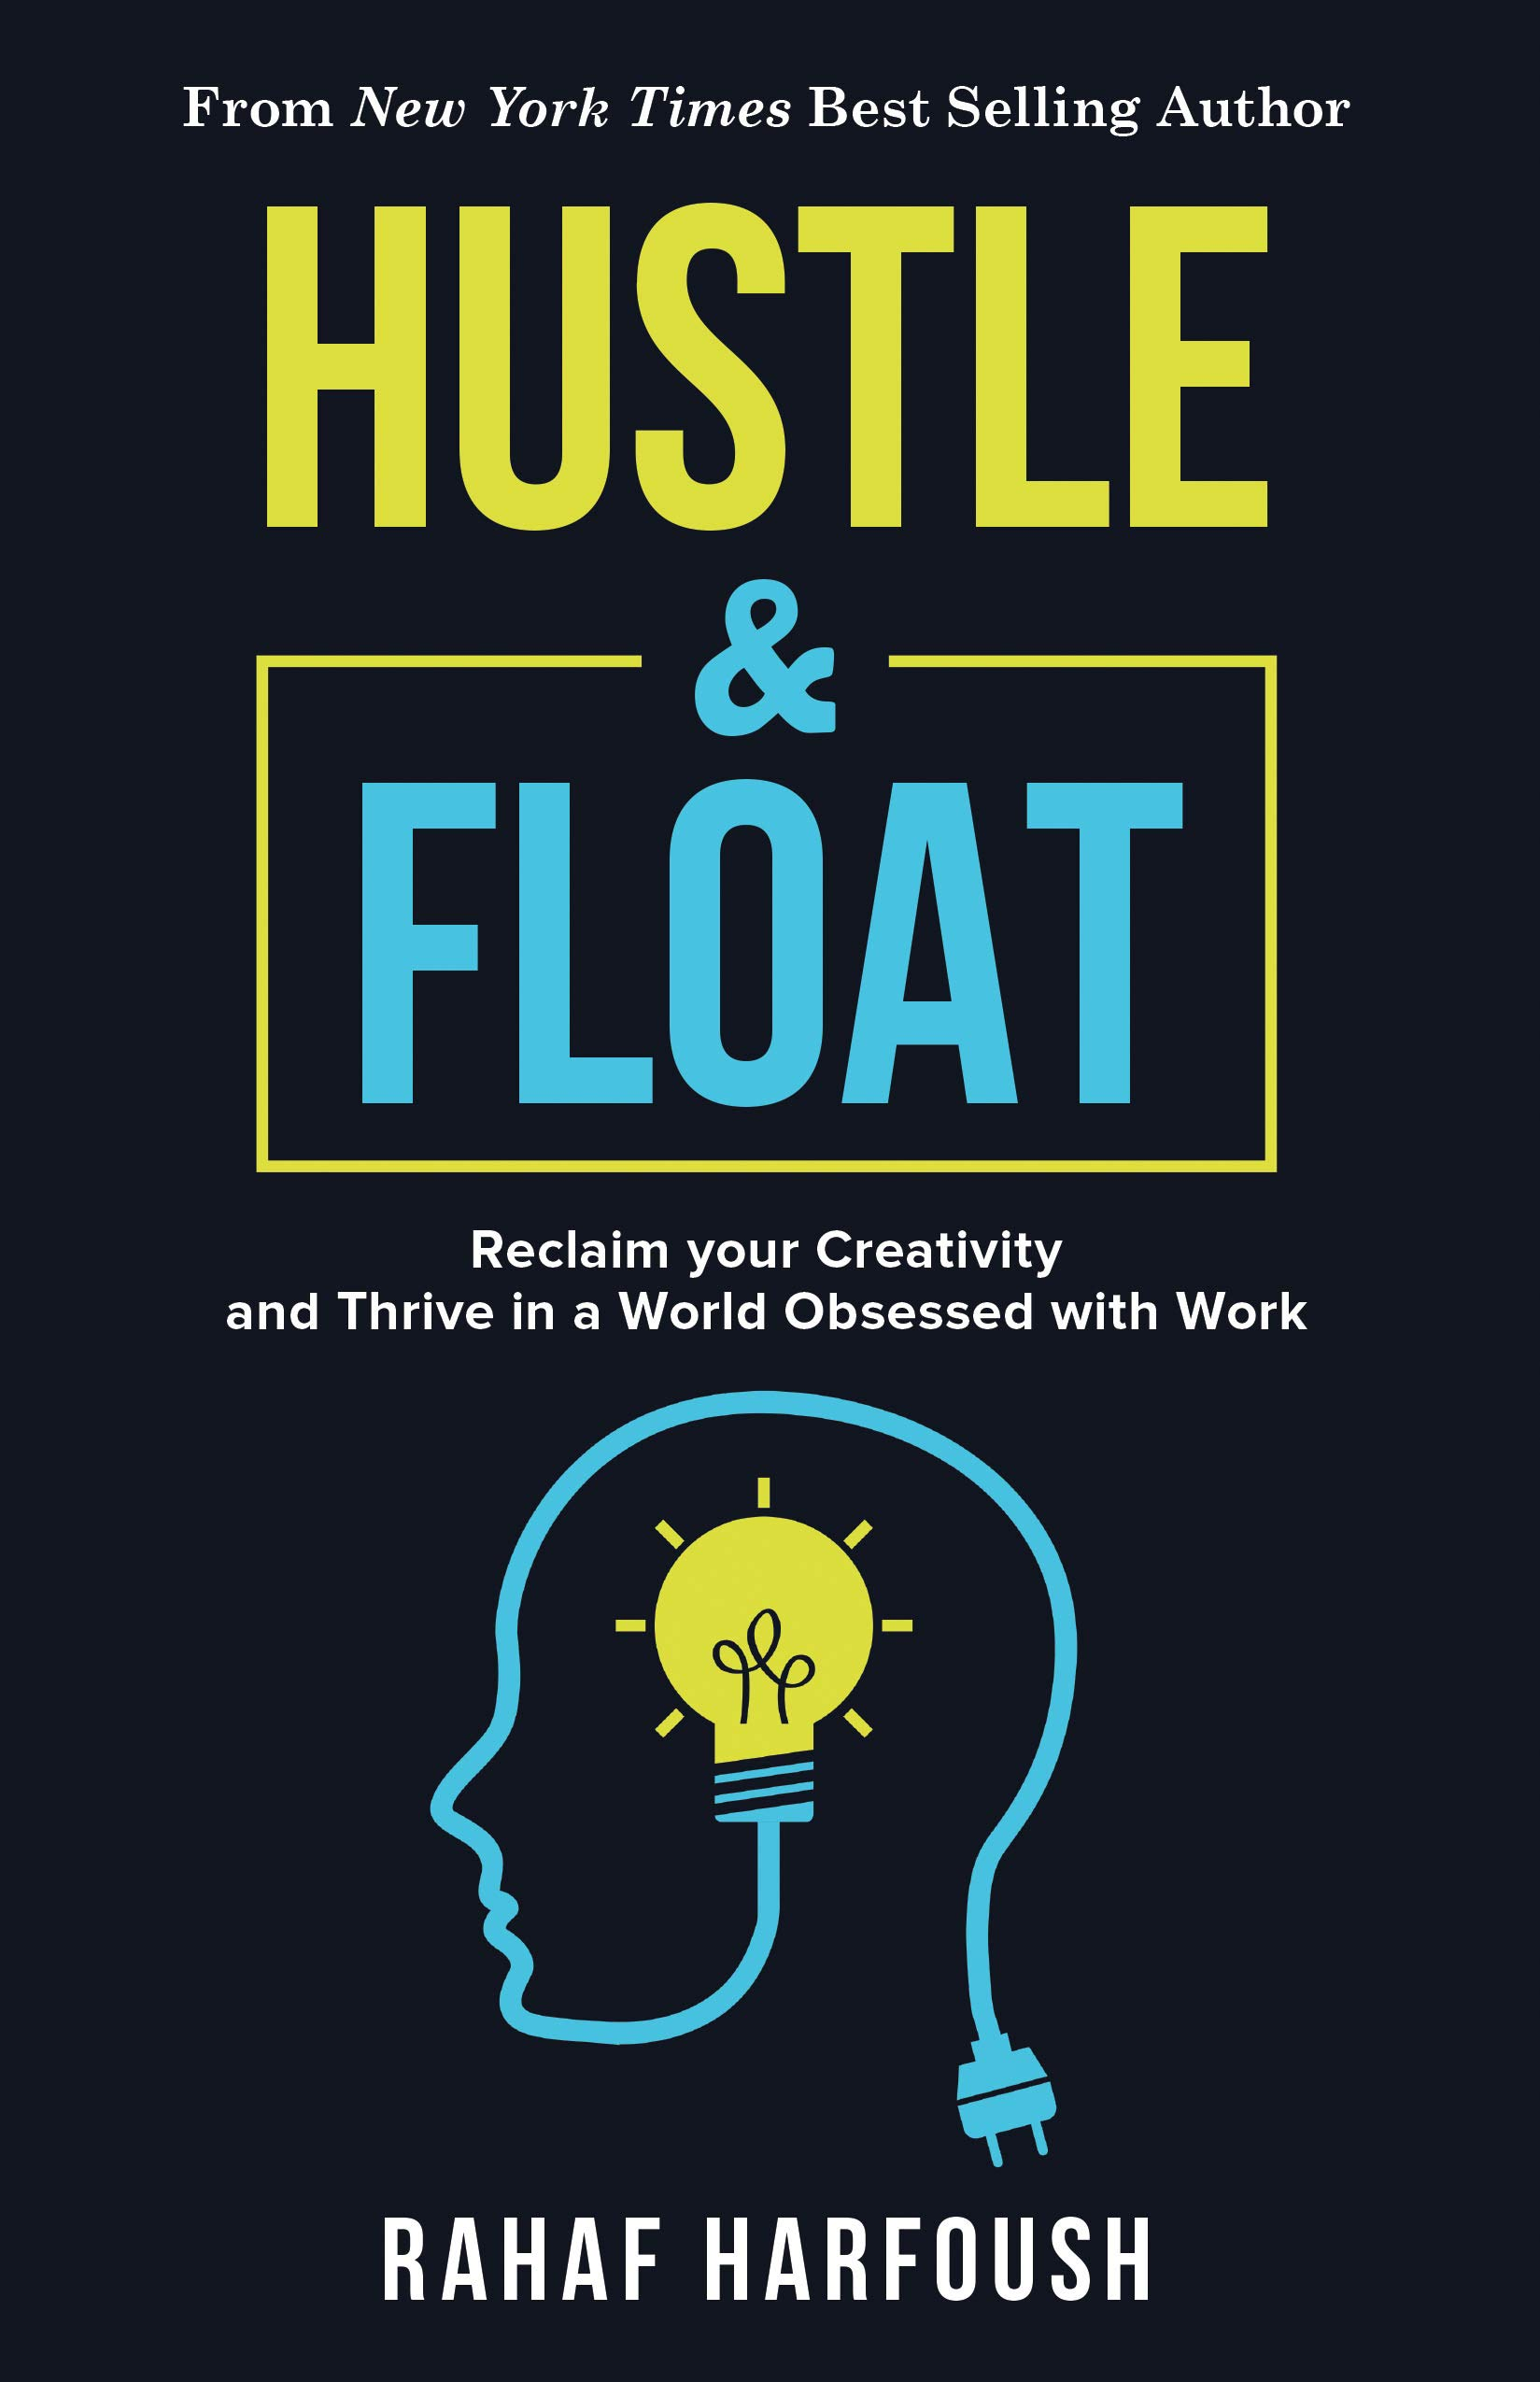 HUSTLE AND FLOAT: Reclaim Your Creativity and Thrive in a World Obsessed with Work.